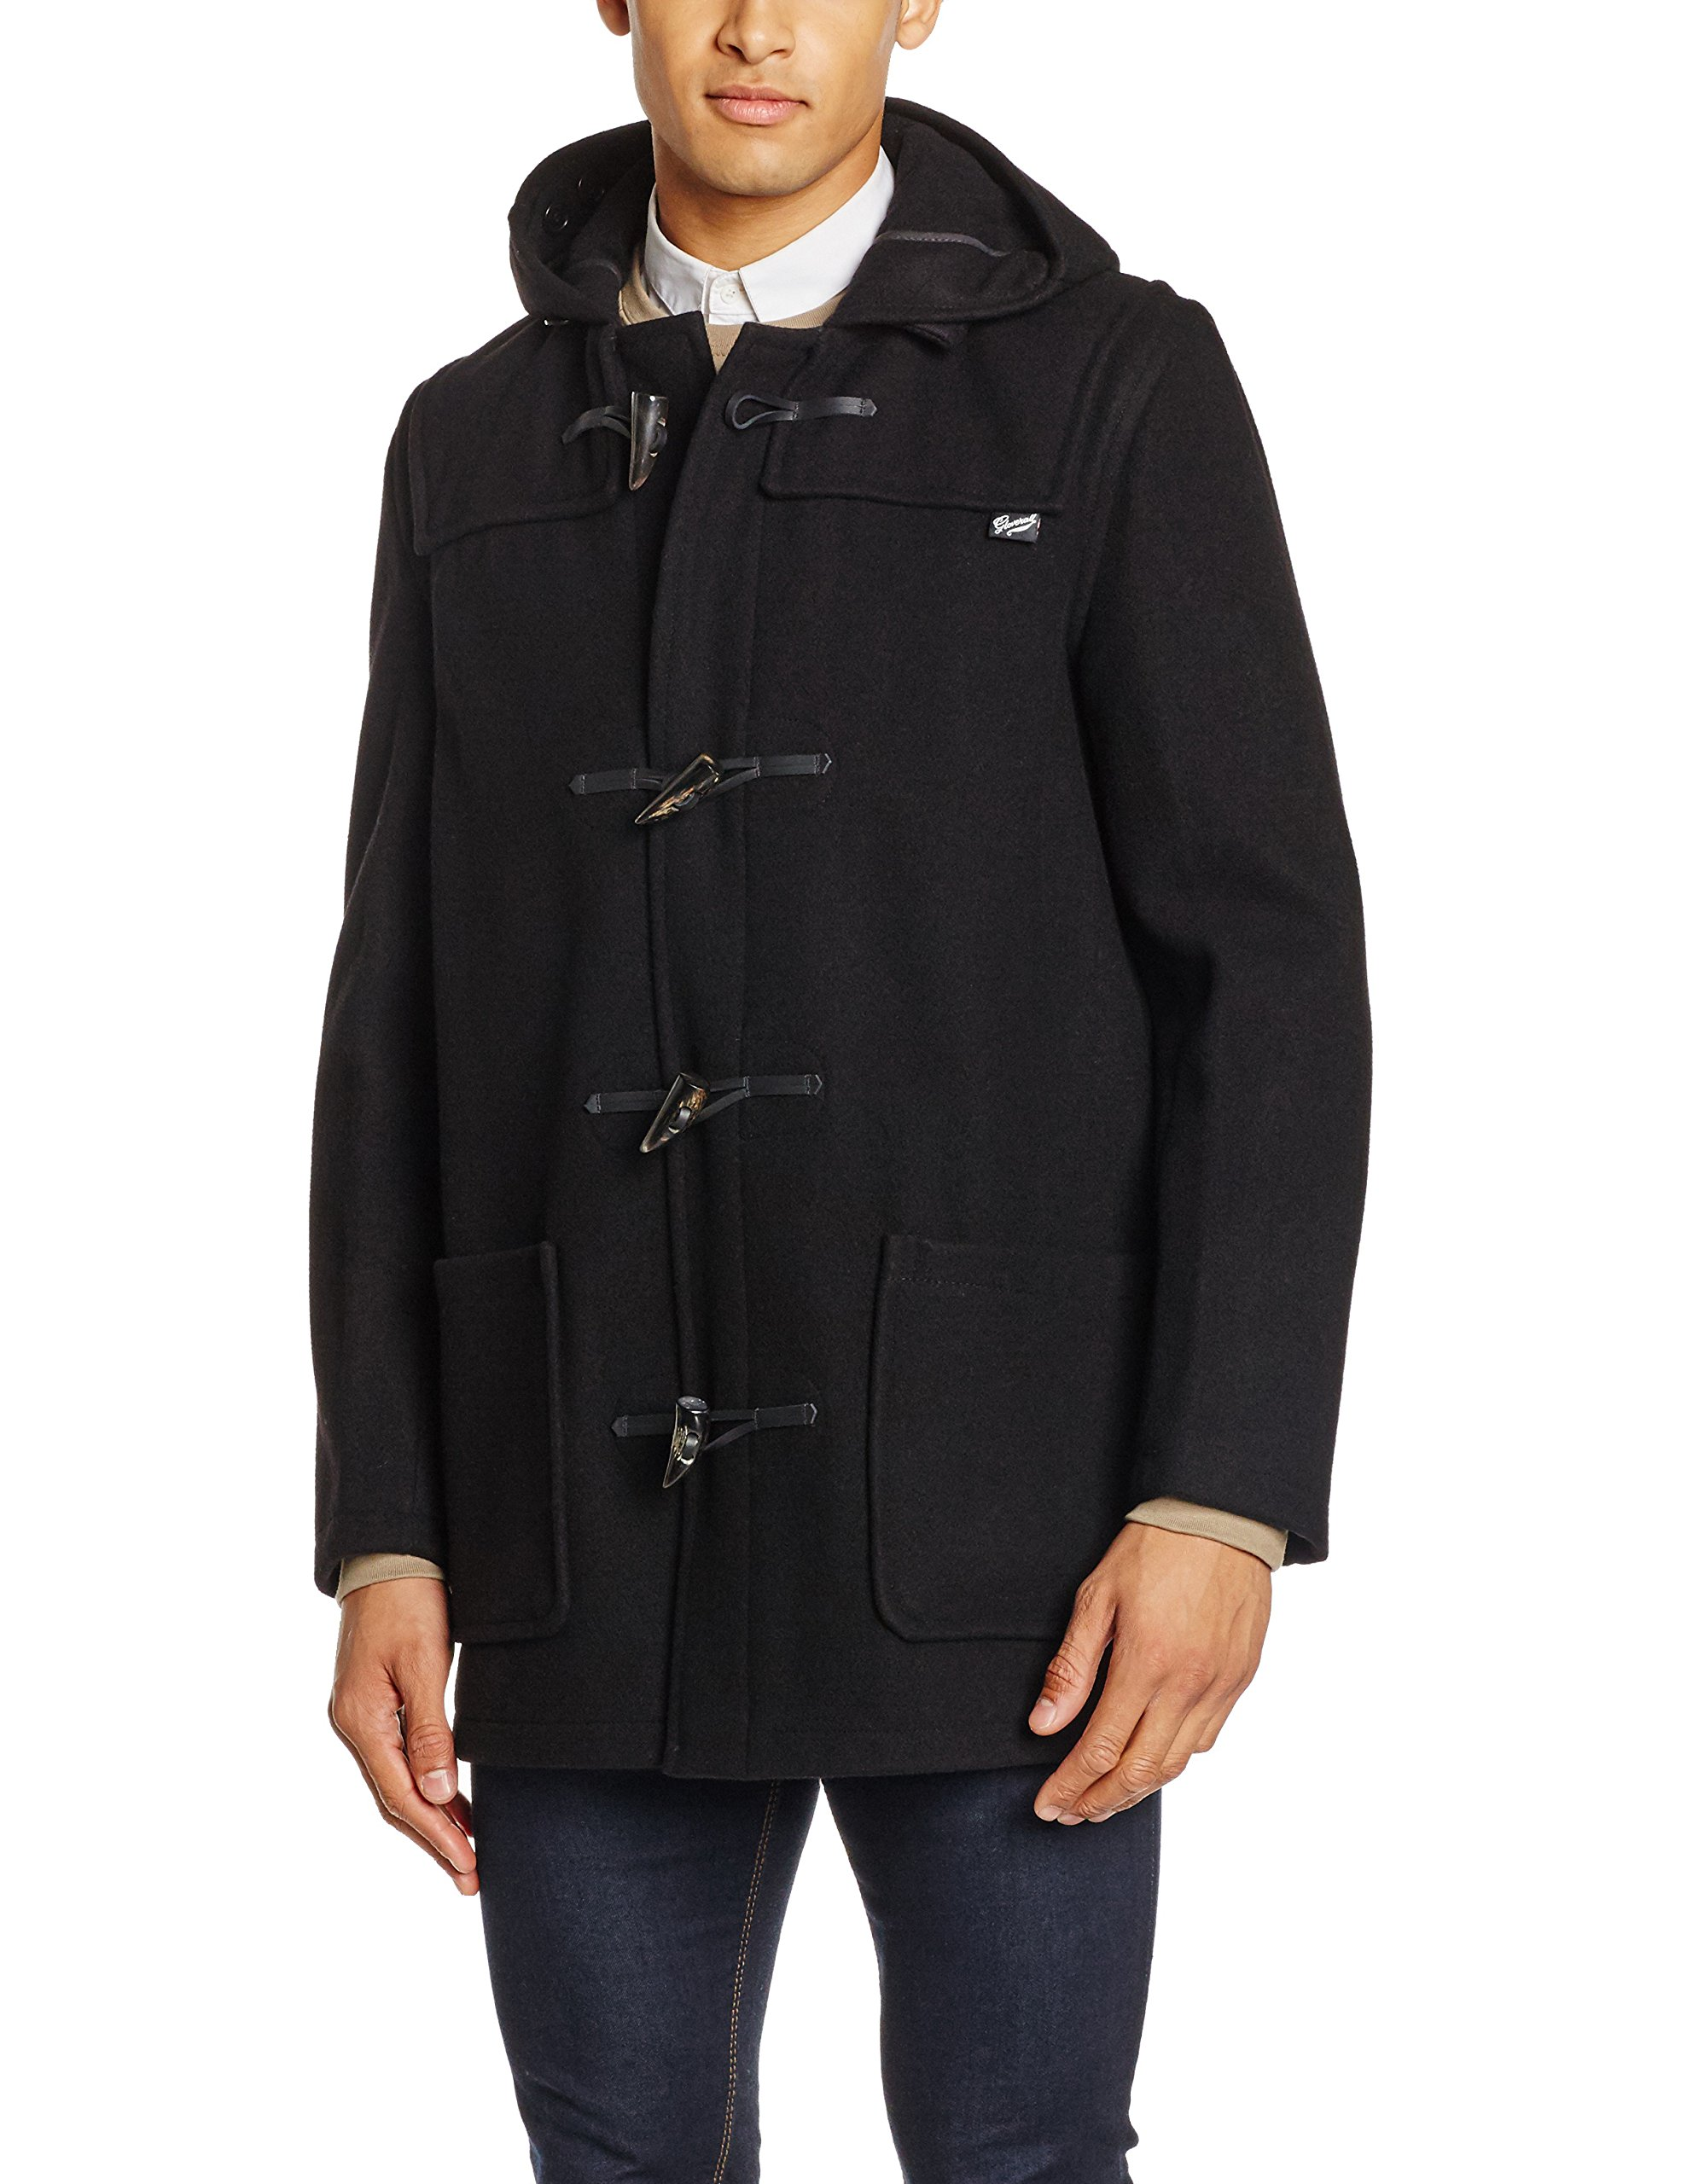 54 Homme Fabricant Classic Duffle taille Manteau Gloverall Manches Coat bordeaux 44 Rouge Longues 8XUw8